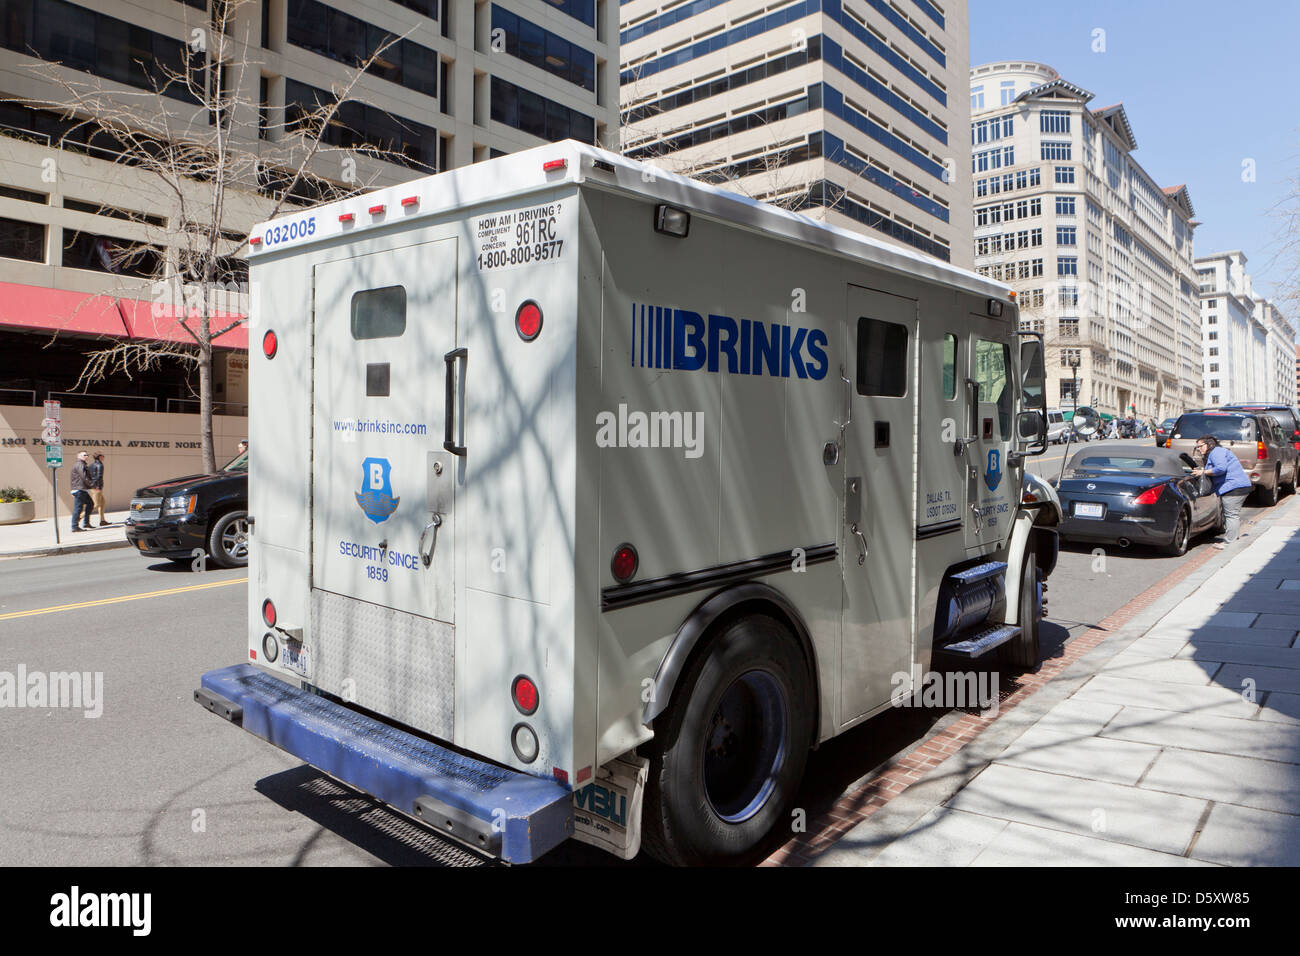 Brinks armored truck - Stock Image